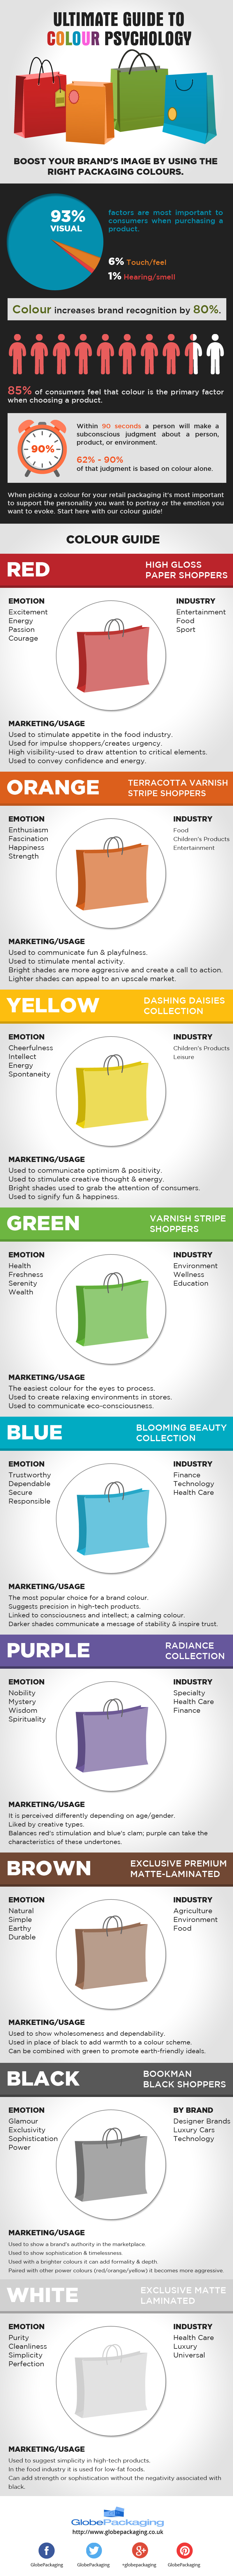 Ultimate Colour Psychology Guide [Infographic]